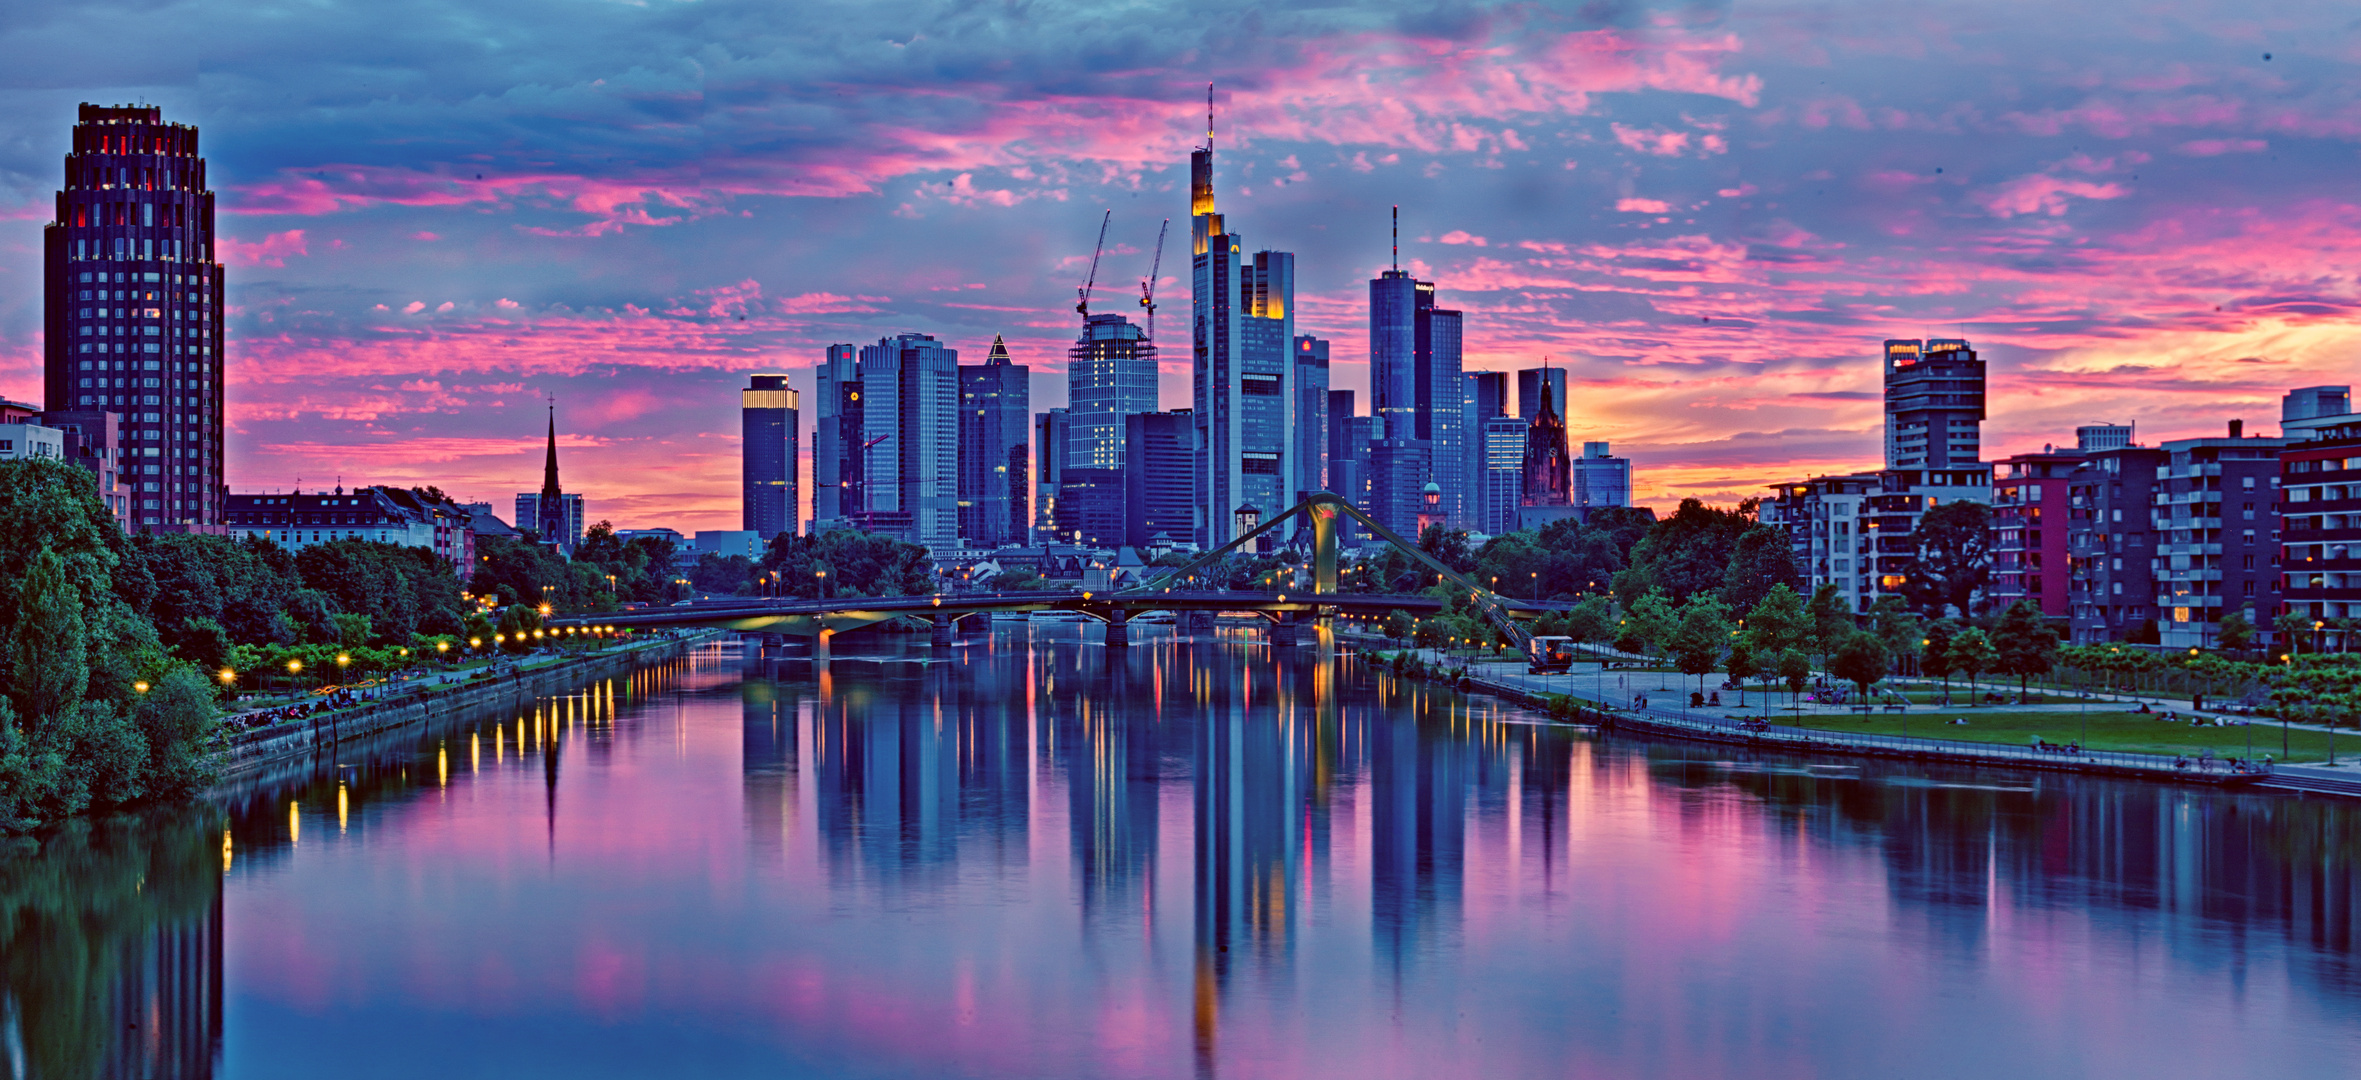 frankfurt skyline sunset foto bild architektur stadtlandschaft skylines bilder auf. Black Bedroom Furniture Sets. Home Design Ideas